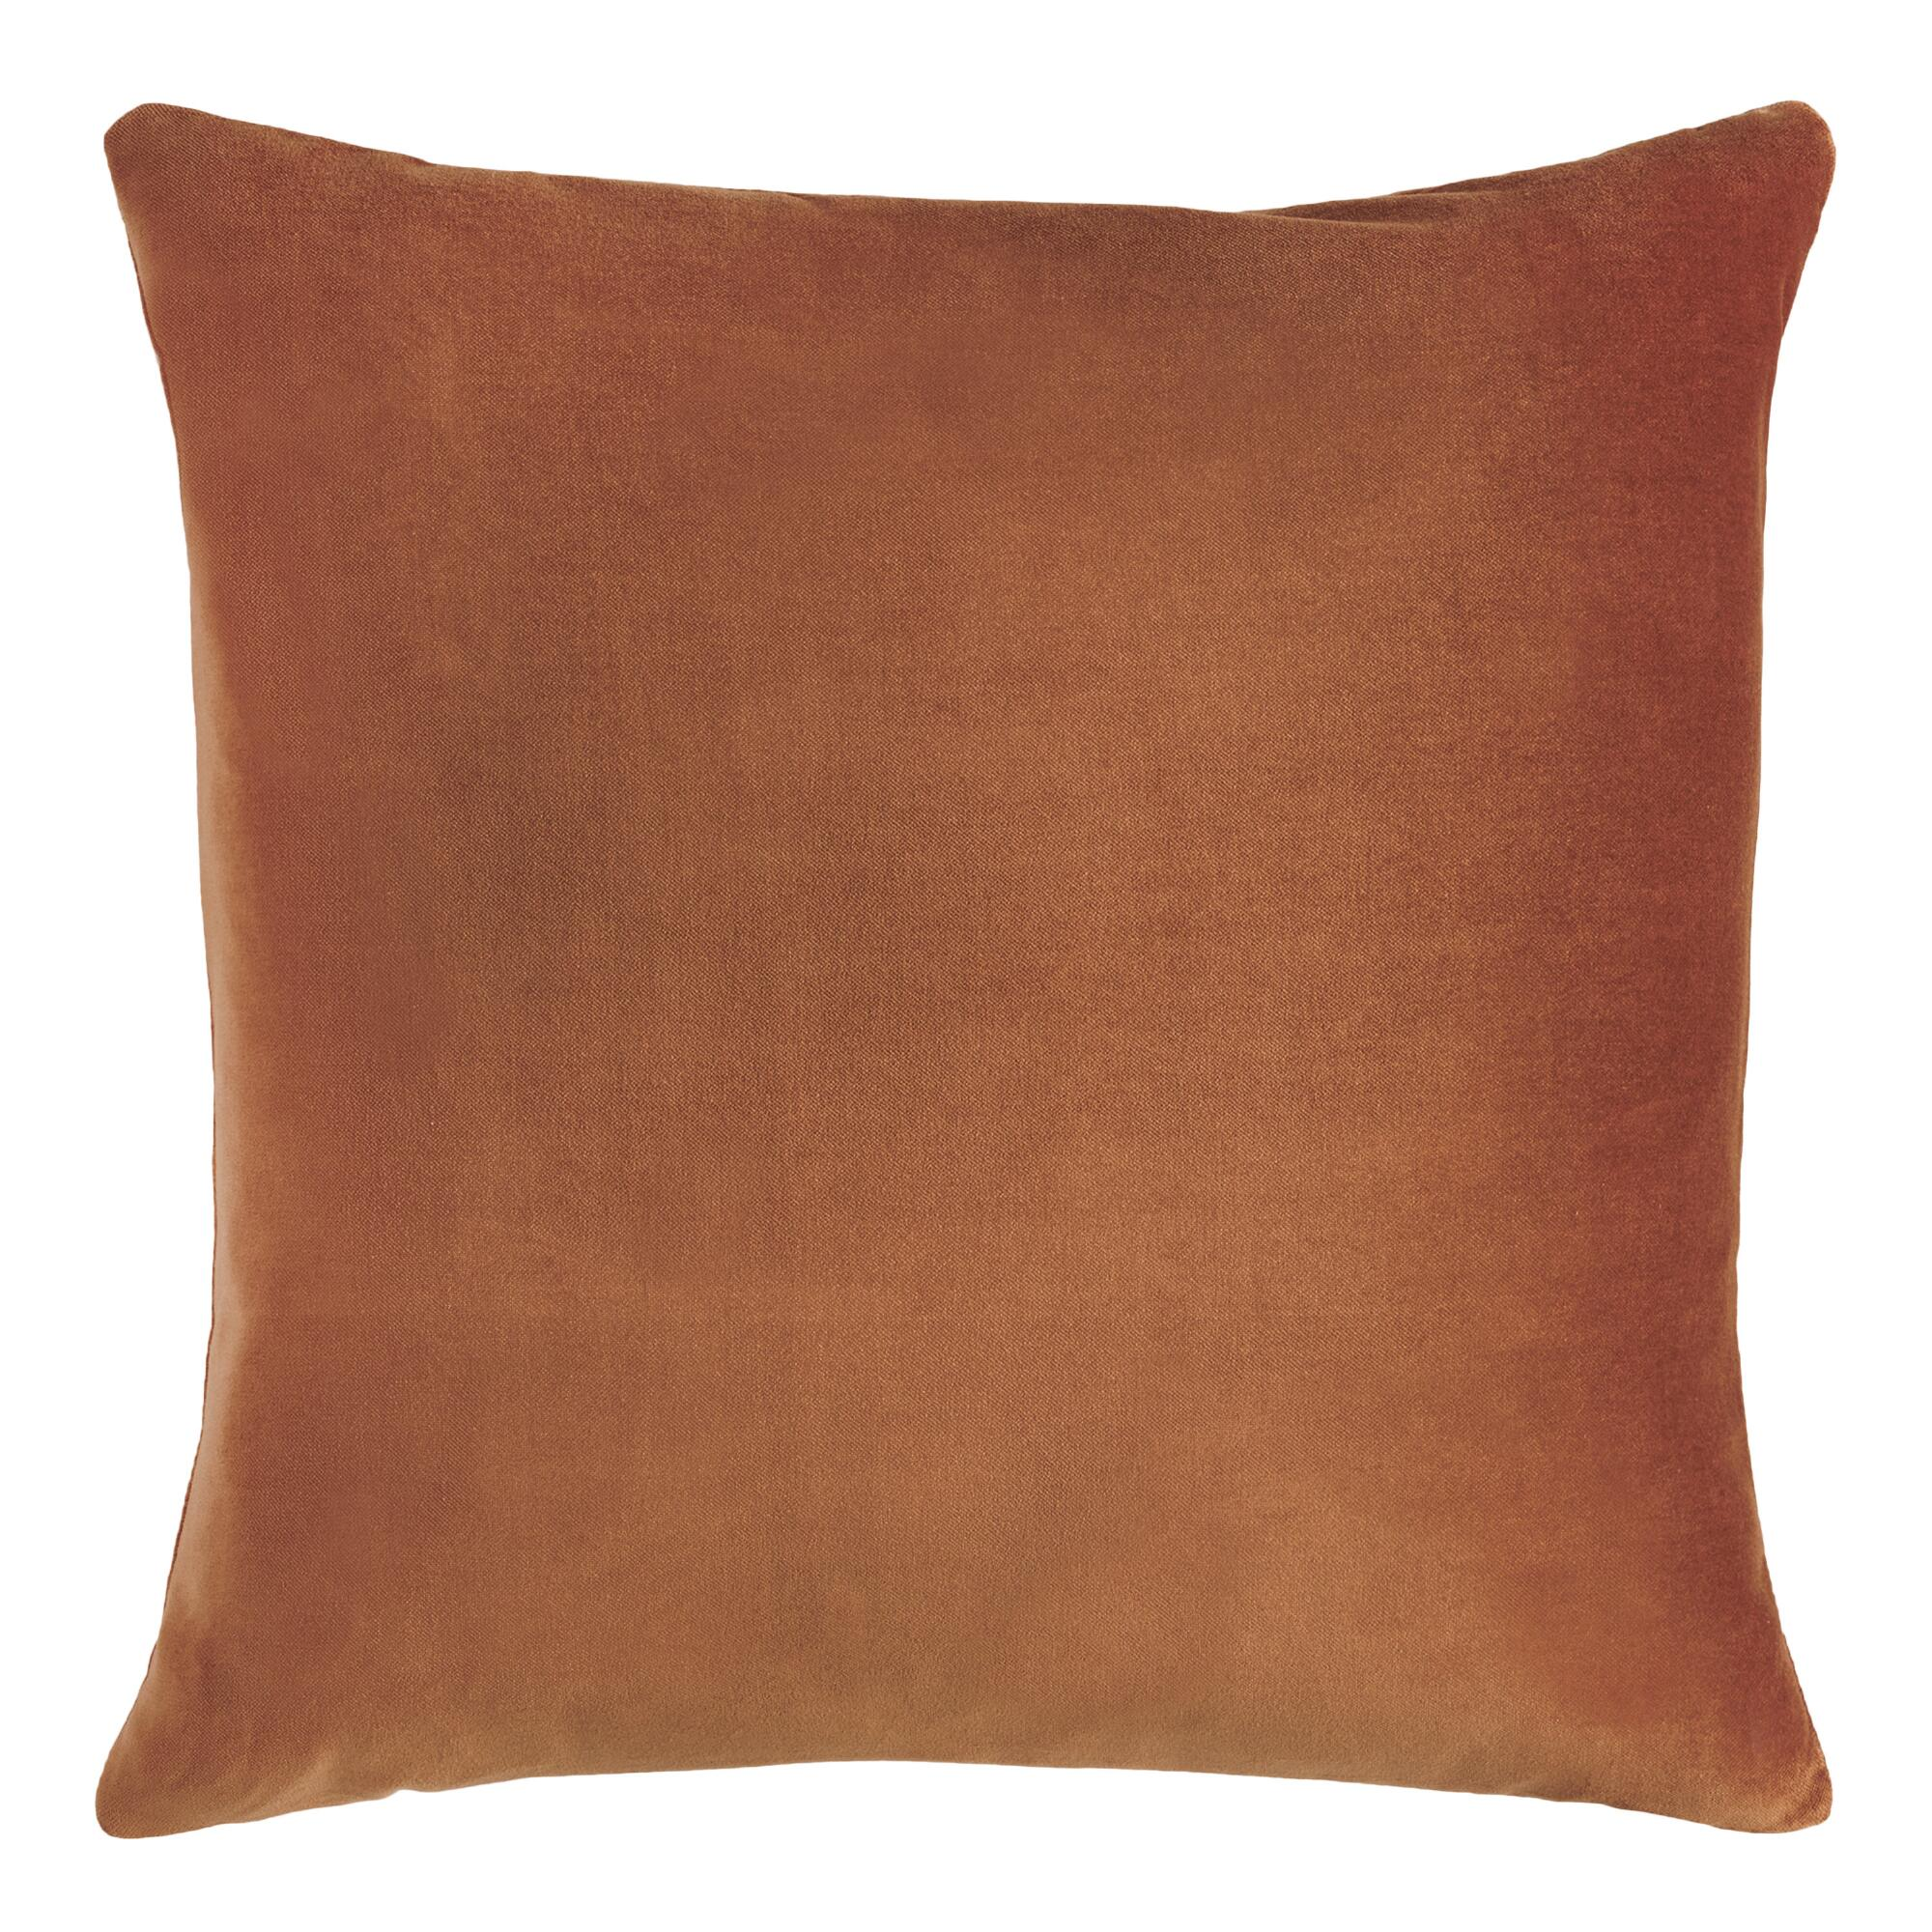 produkt melliphant pillow petrol velvet crushed img